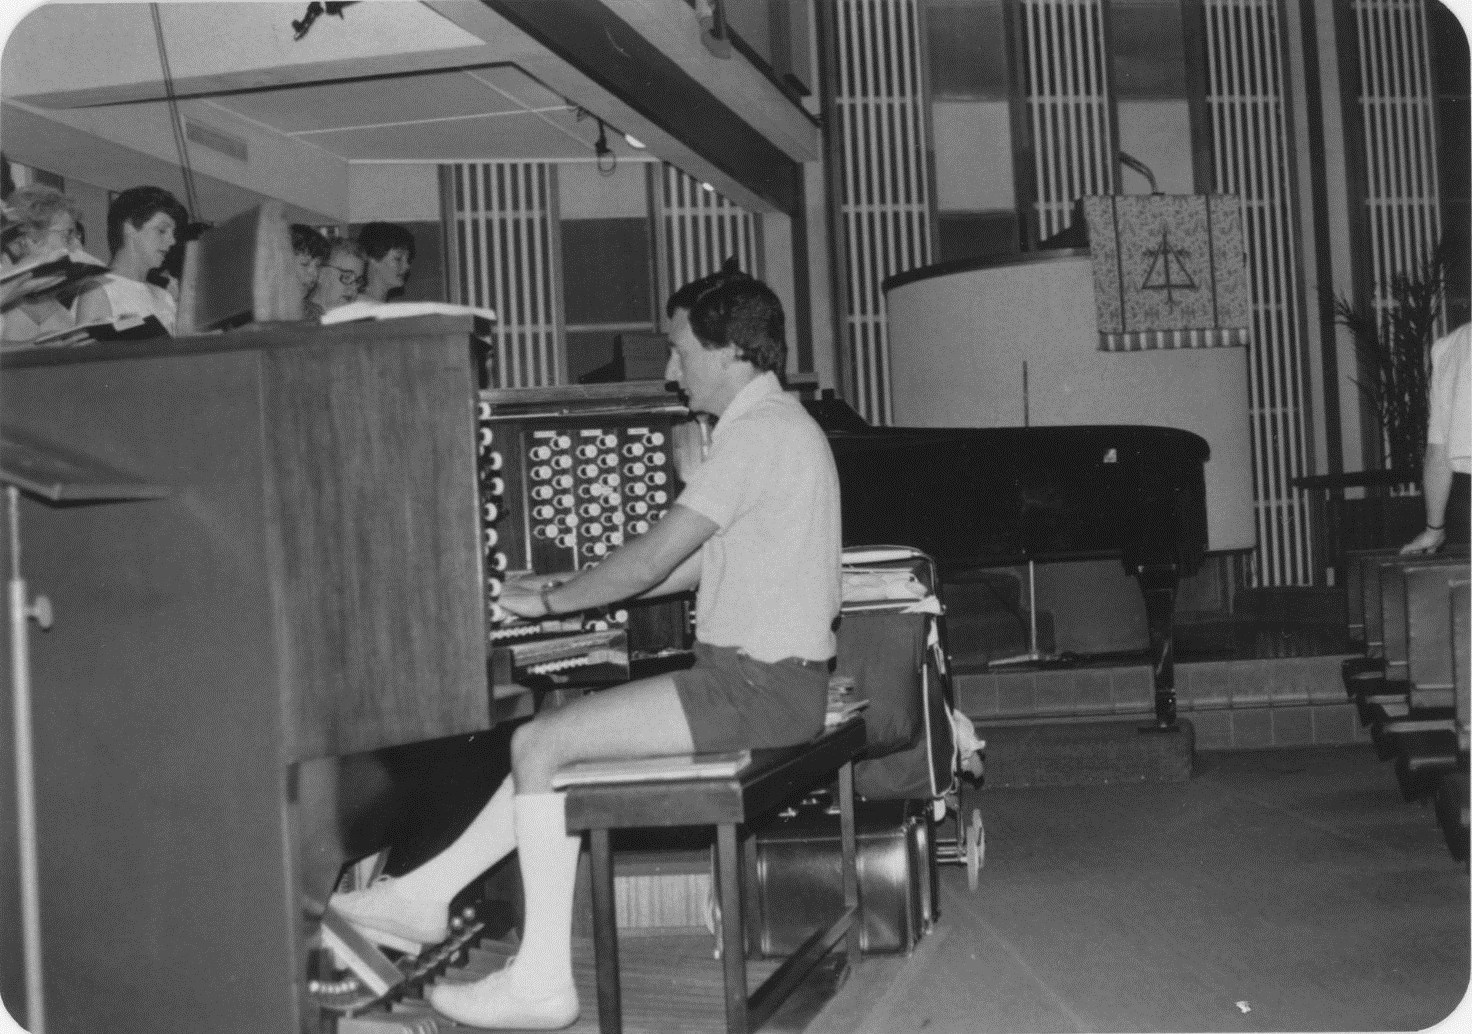 MaughanChurchServicesOrchestra1970s (2)